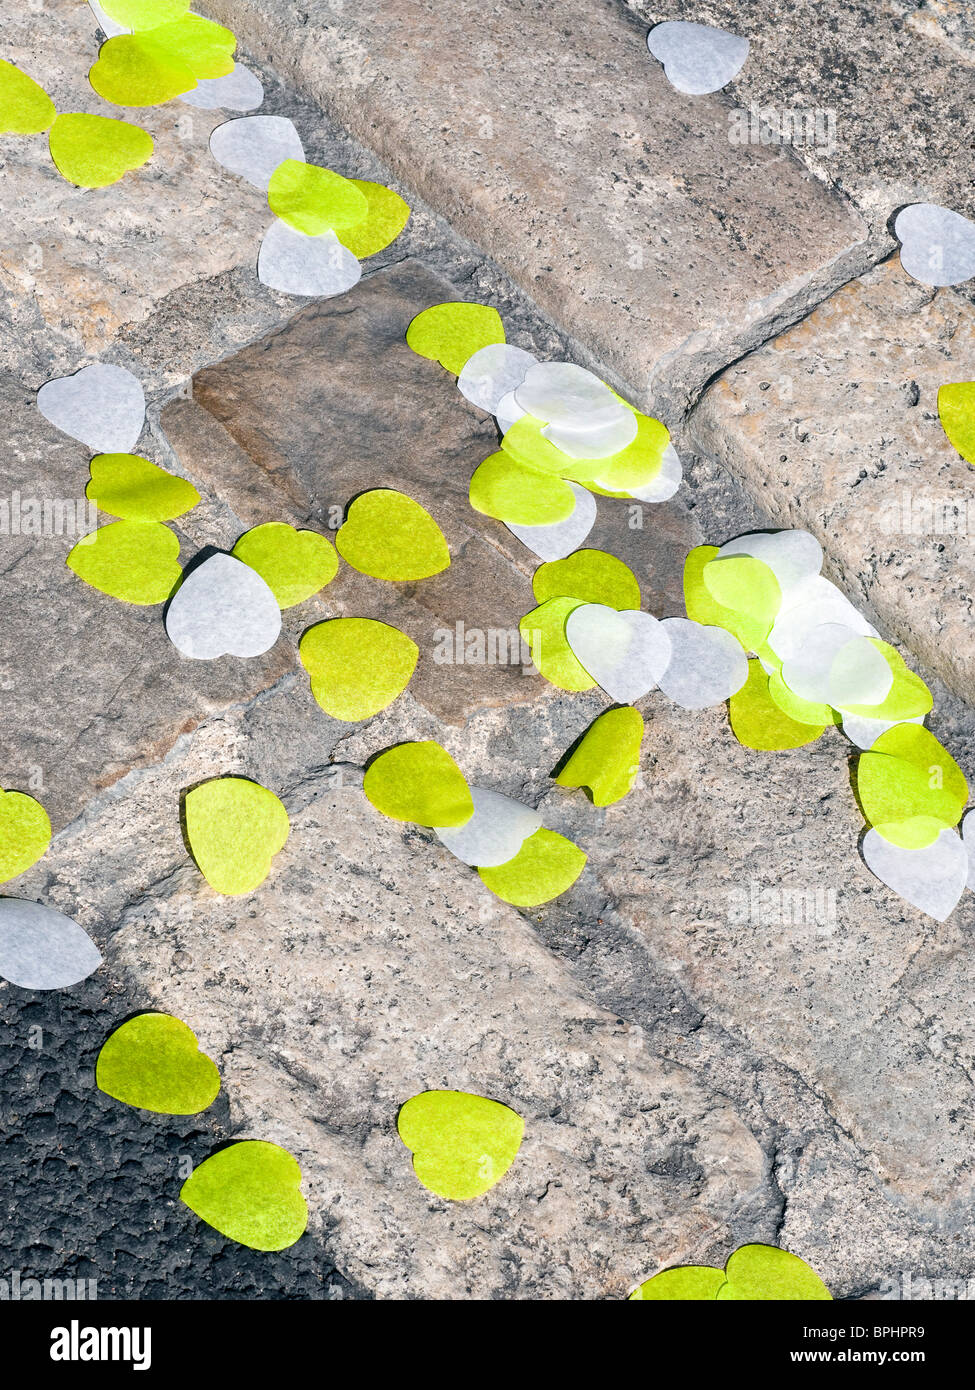 Heart shaped confetti lying in gutter after wedding - Indre-et-Loire, France. - Stock Image